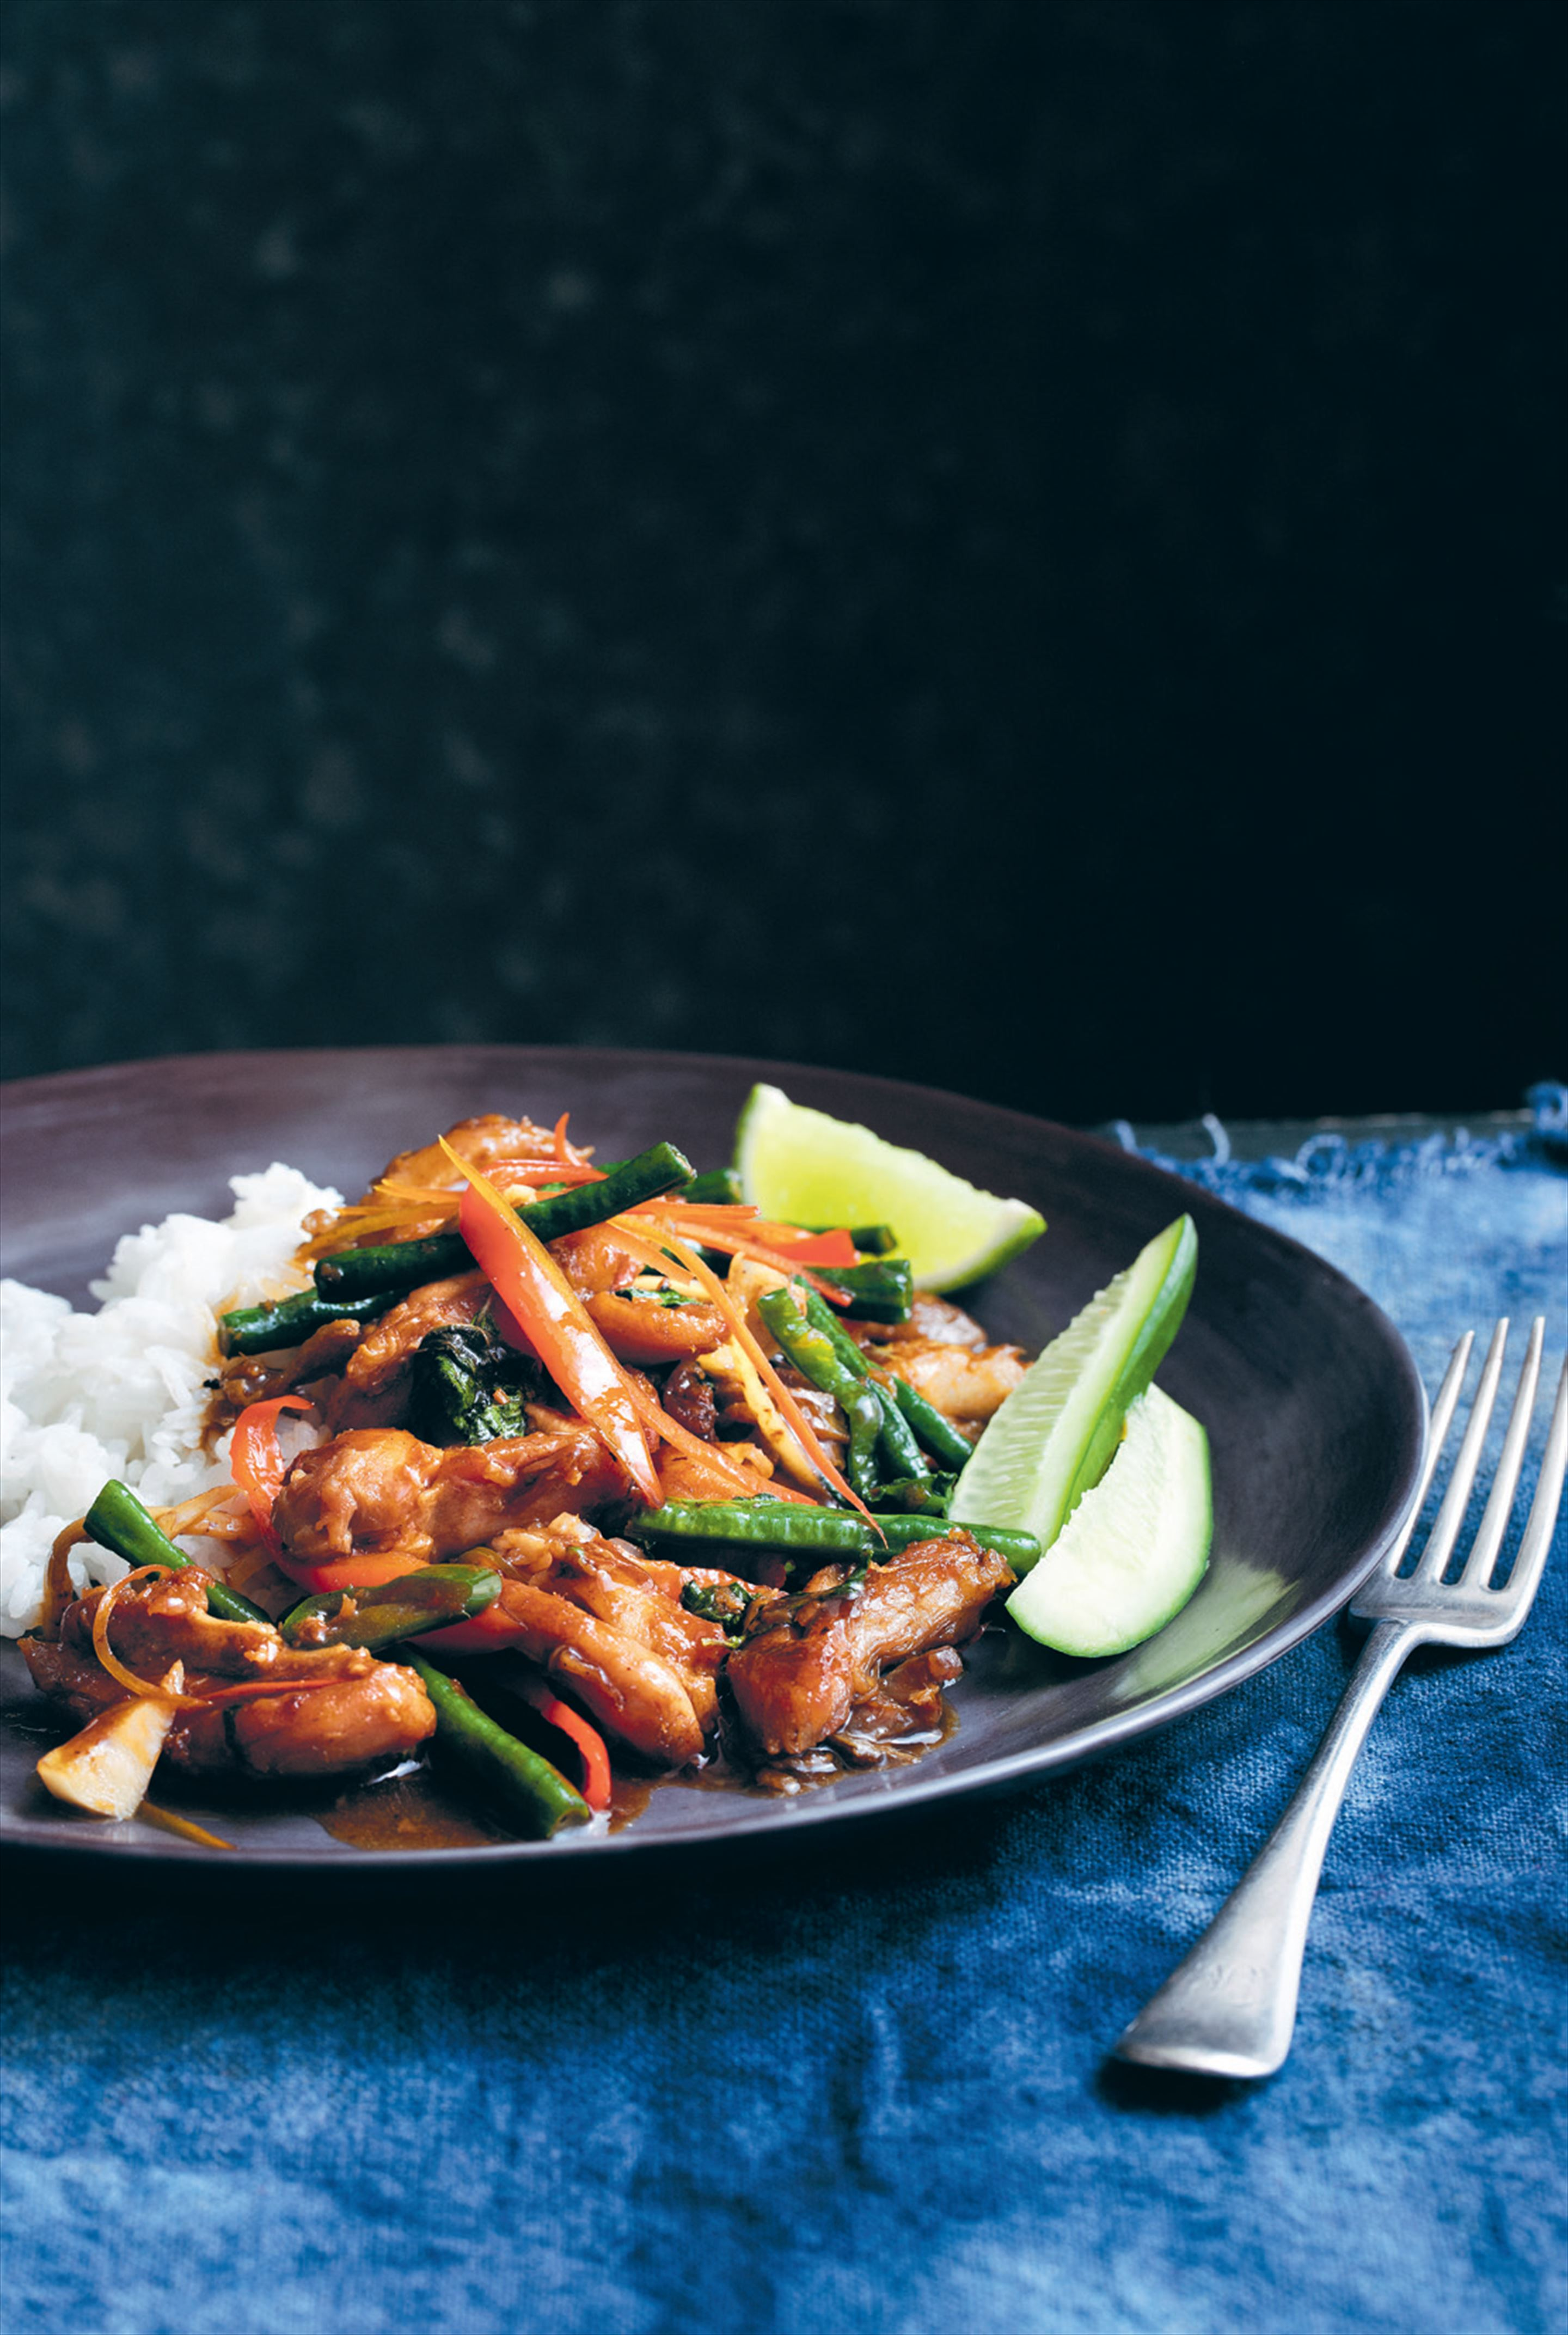 Stir-fried chicken with basil